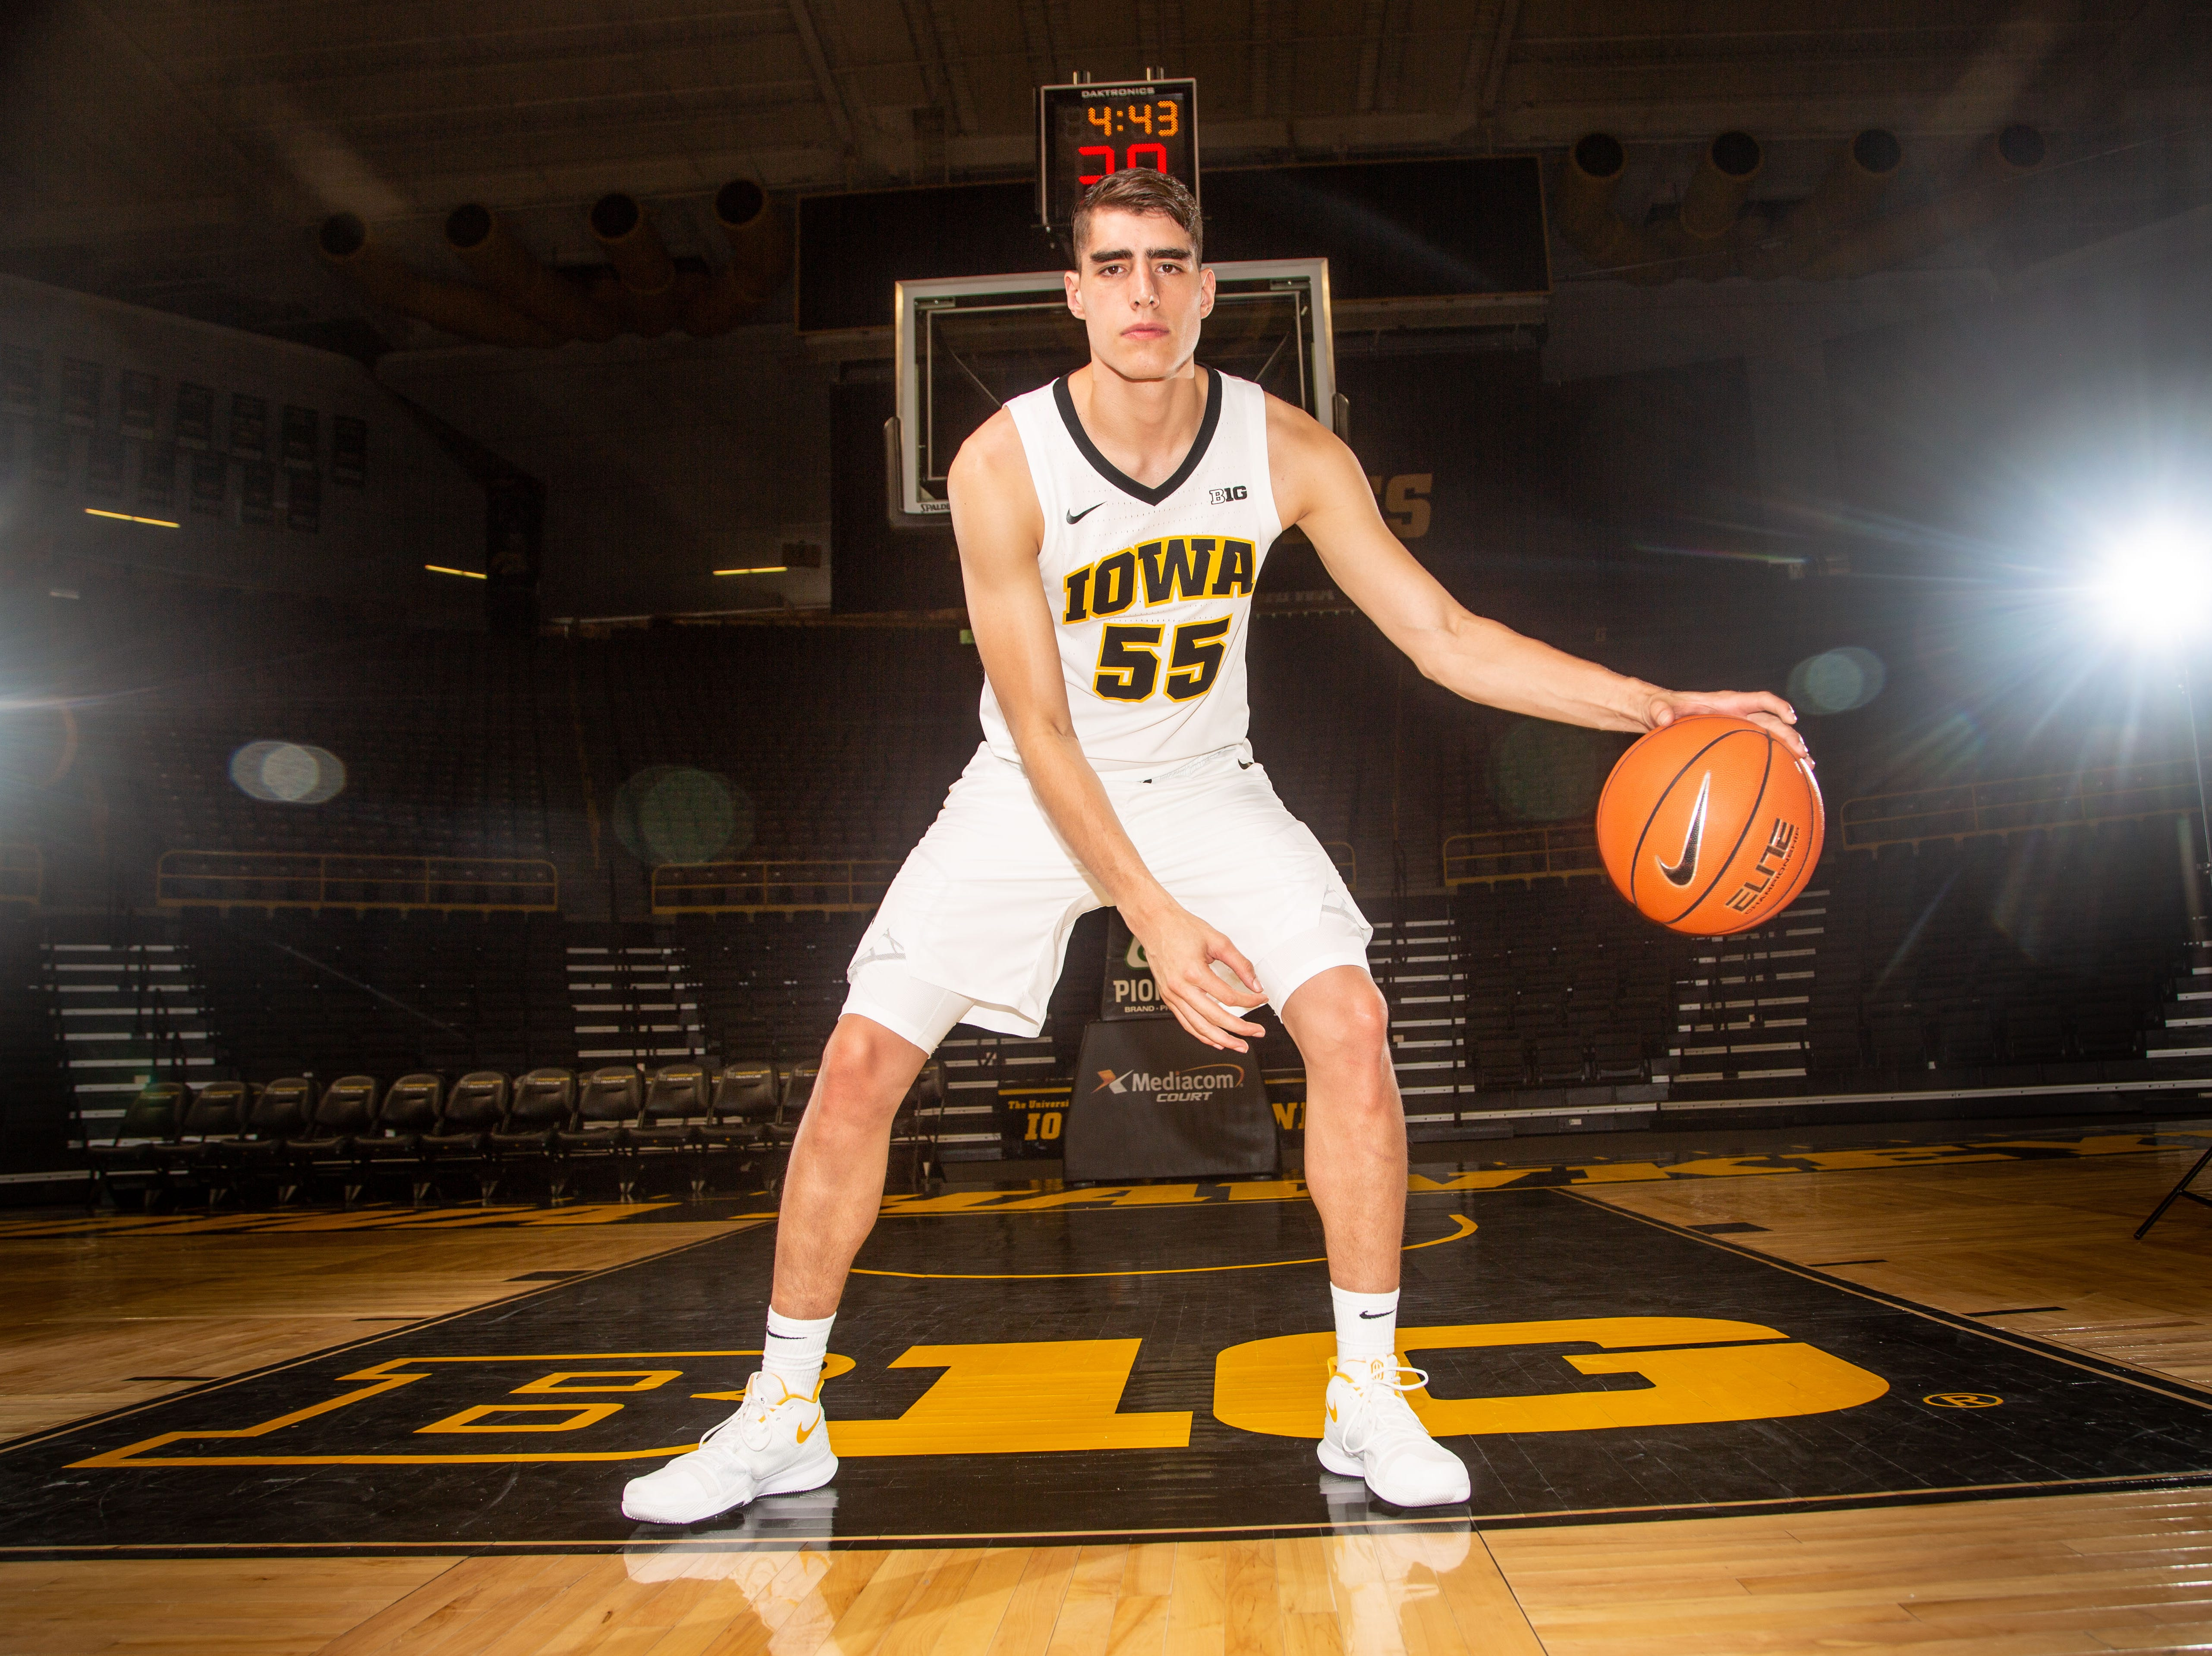 Iowa forward Luka Garza poses for a photo during Hawkeye media day at Carver Hawkeye ArenaMonday, Oct. 8, 2018.